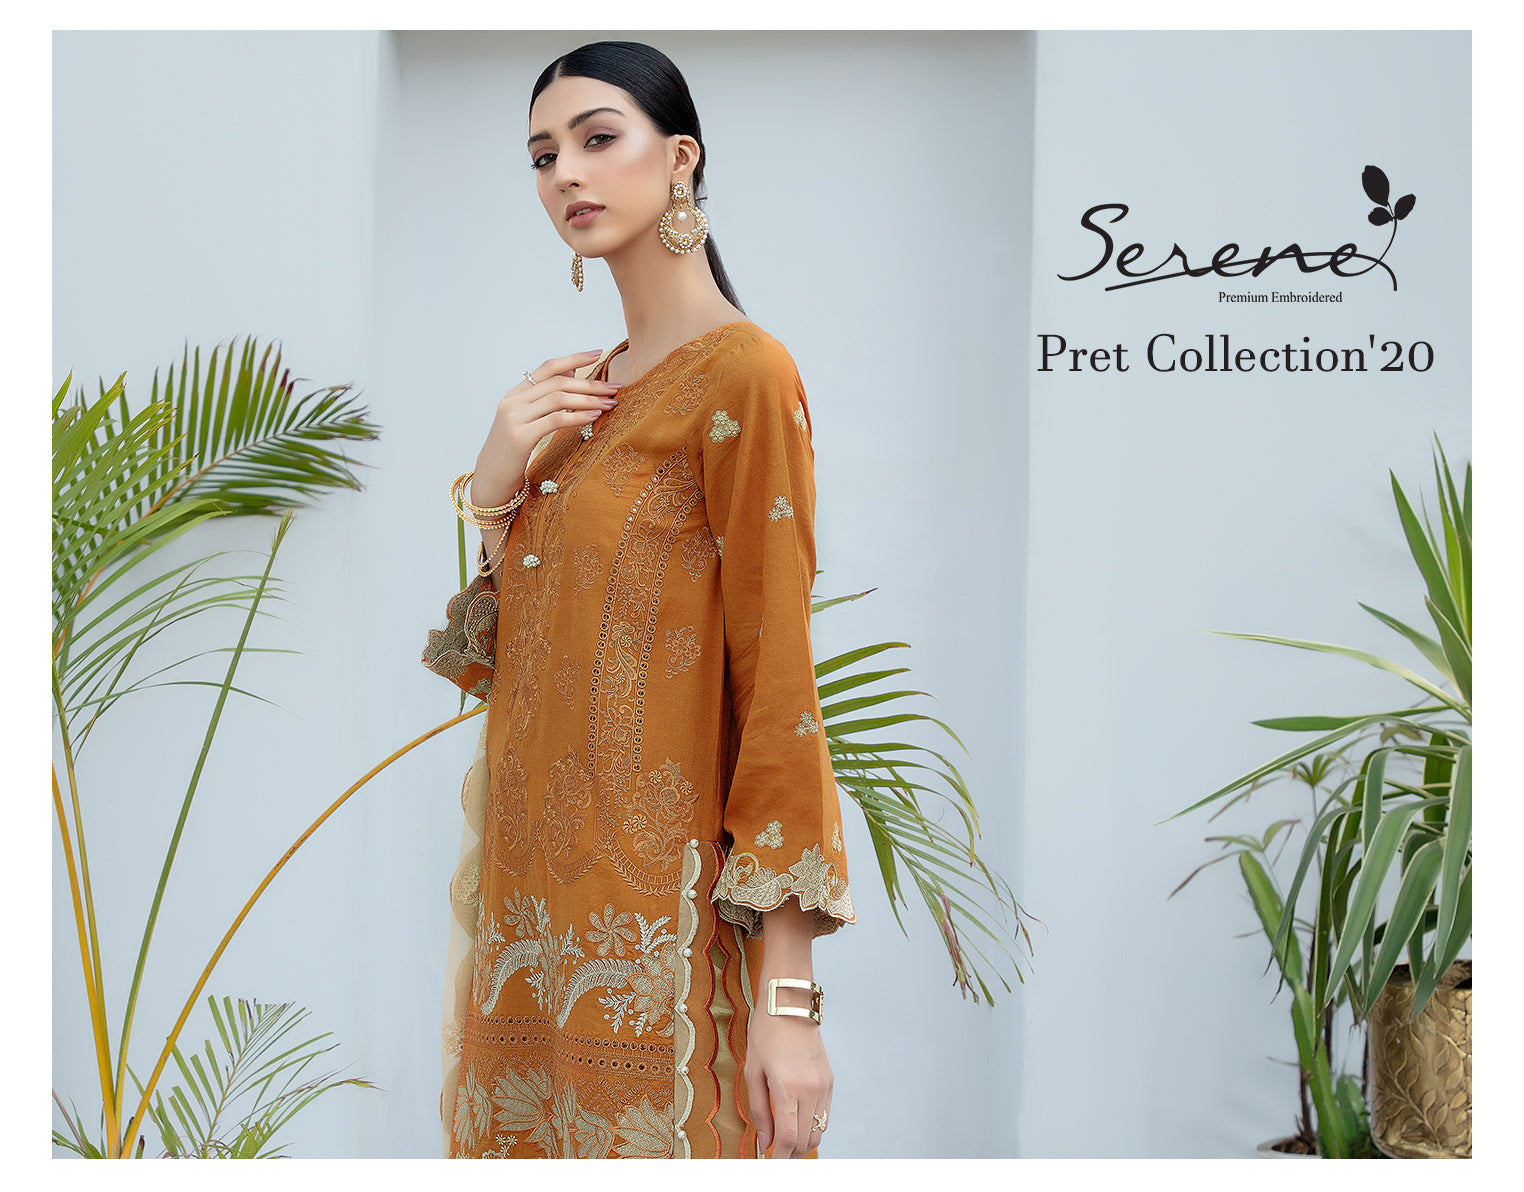 SERENE PRET COLLECTION